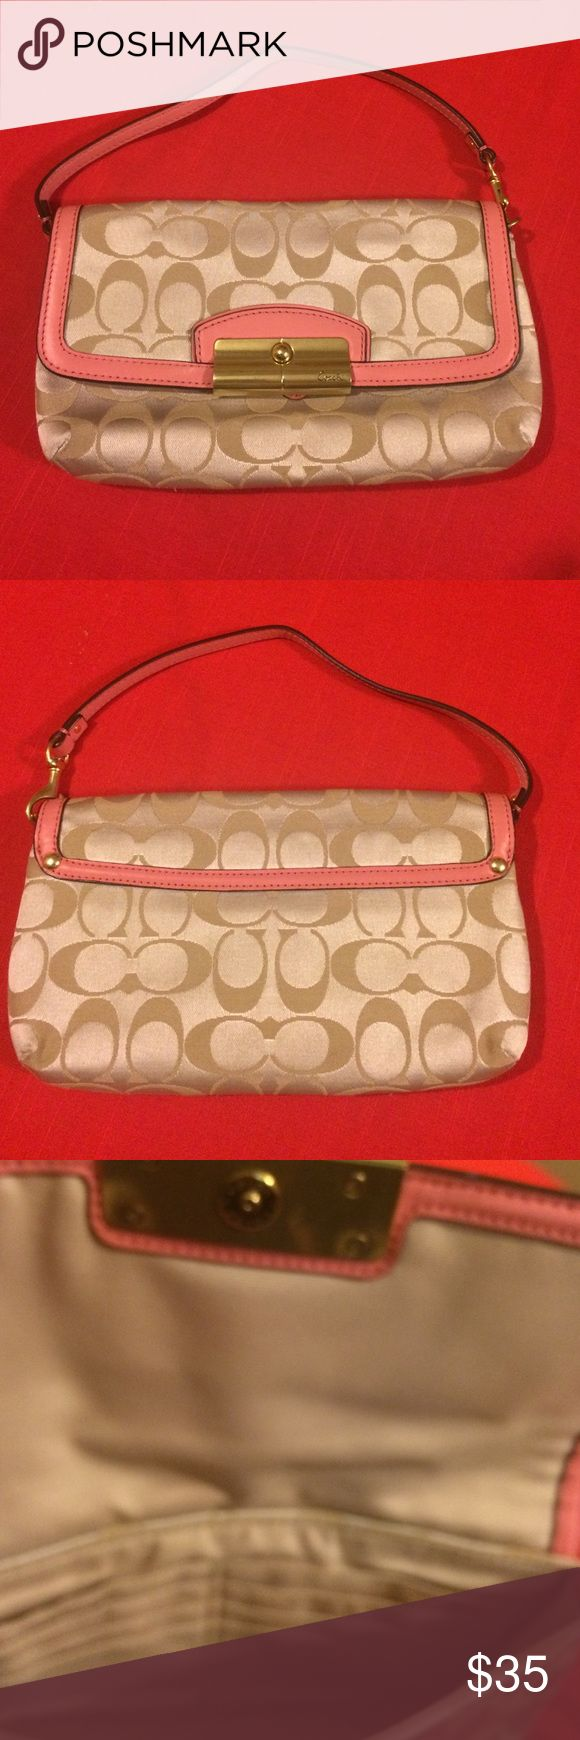 EUC, very cute Coach clutch , light tan fabric EUC, very cute Coach clutch , light tan fabric w/pink leather trim, carried a couple times, but in great condition . Coach Bags Clutches & Wristlets